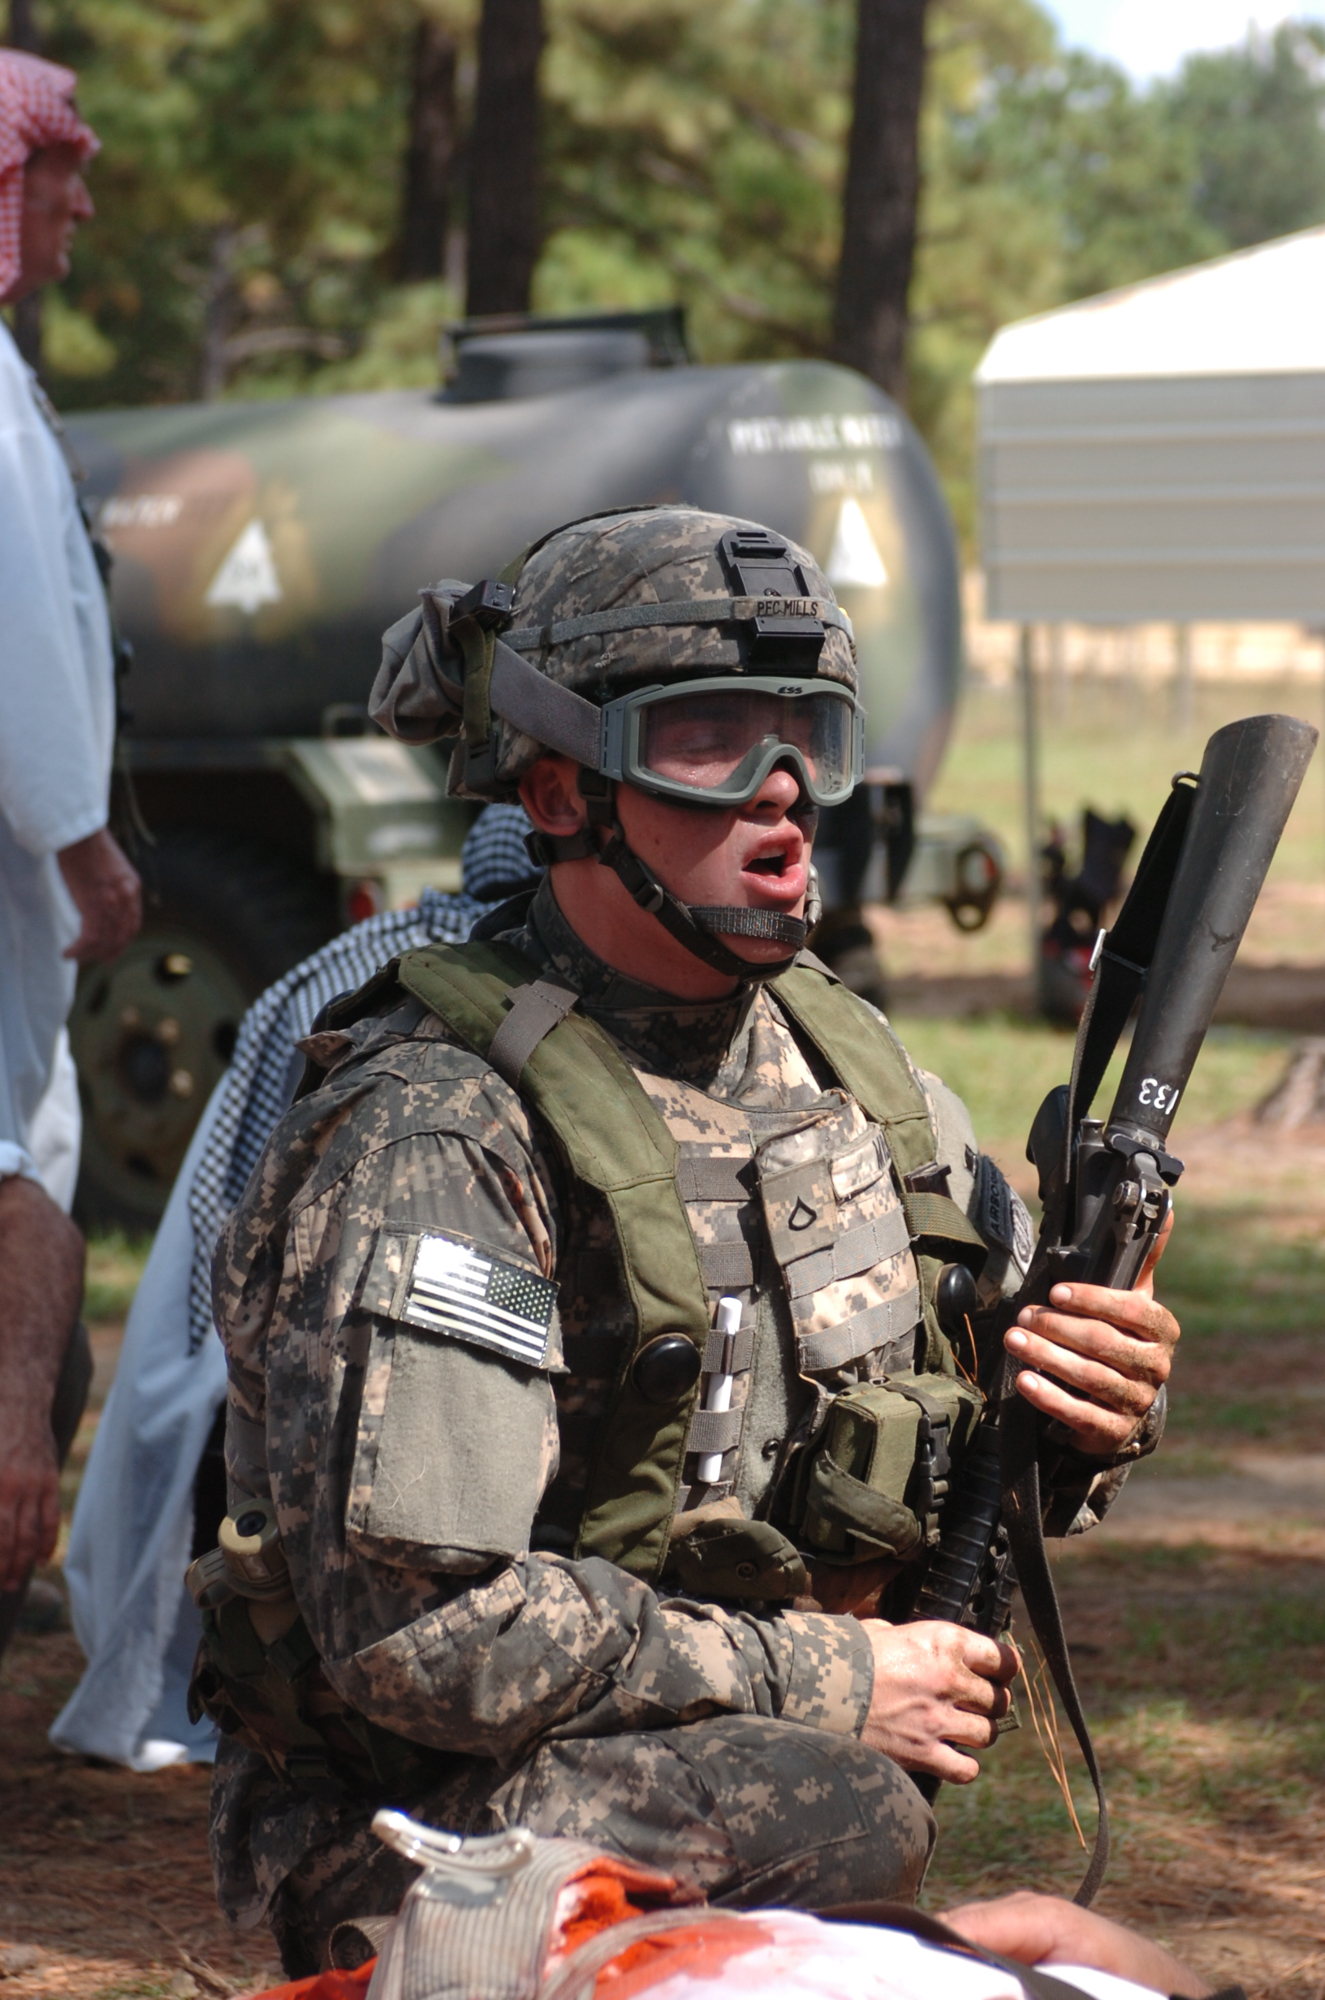 US-ARMY-TRAINING-JRTC-28.jpg